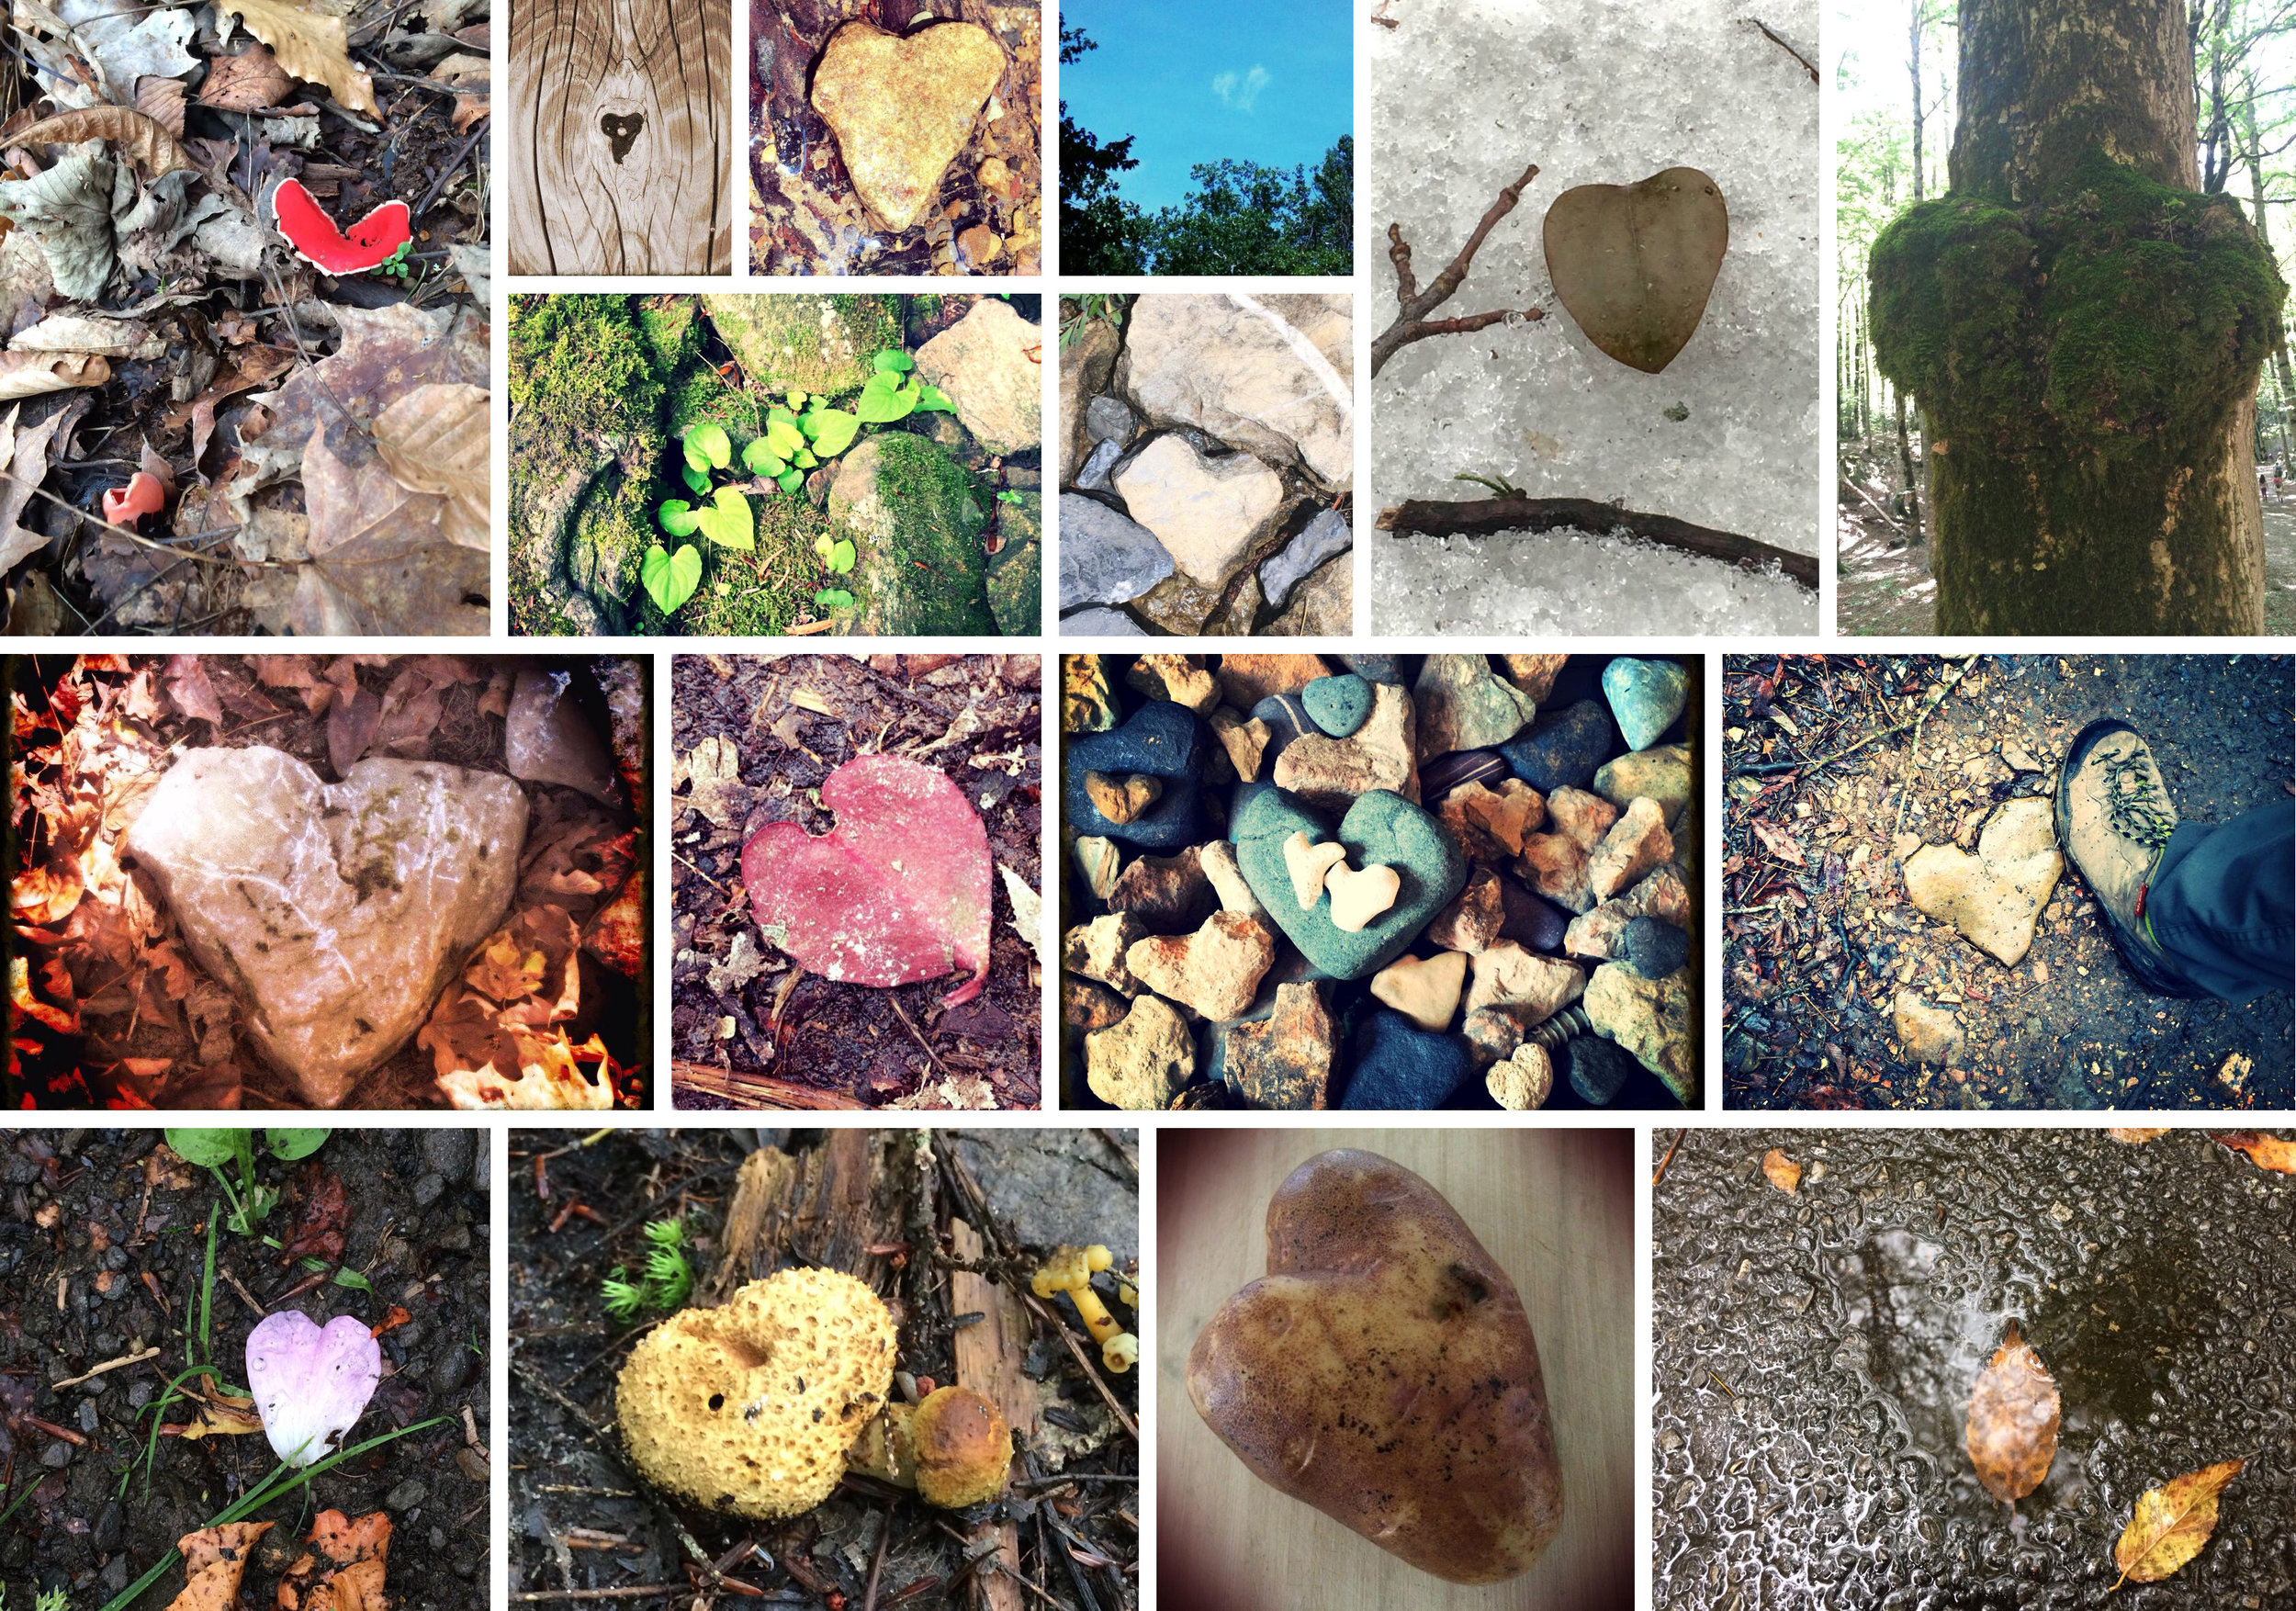 I have a habit of seeking out heart shapes wherever I go. Nature provides many examples!